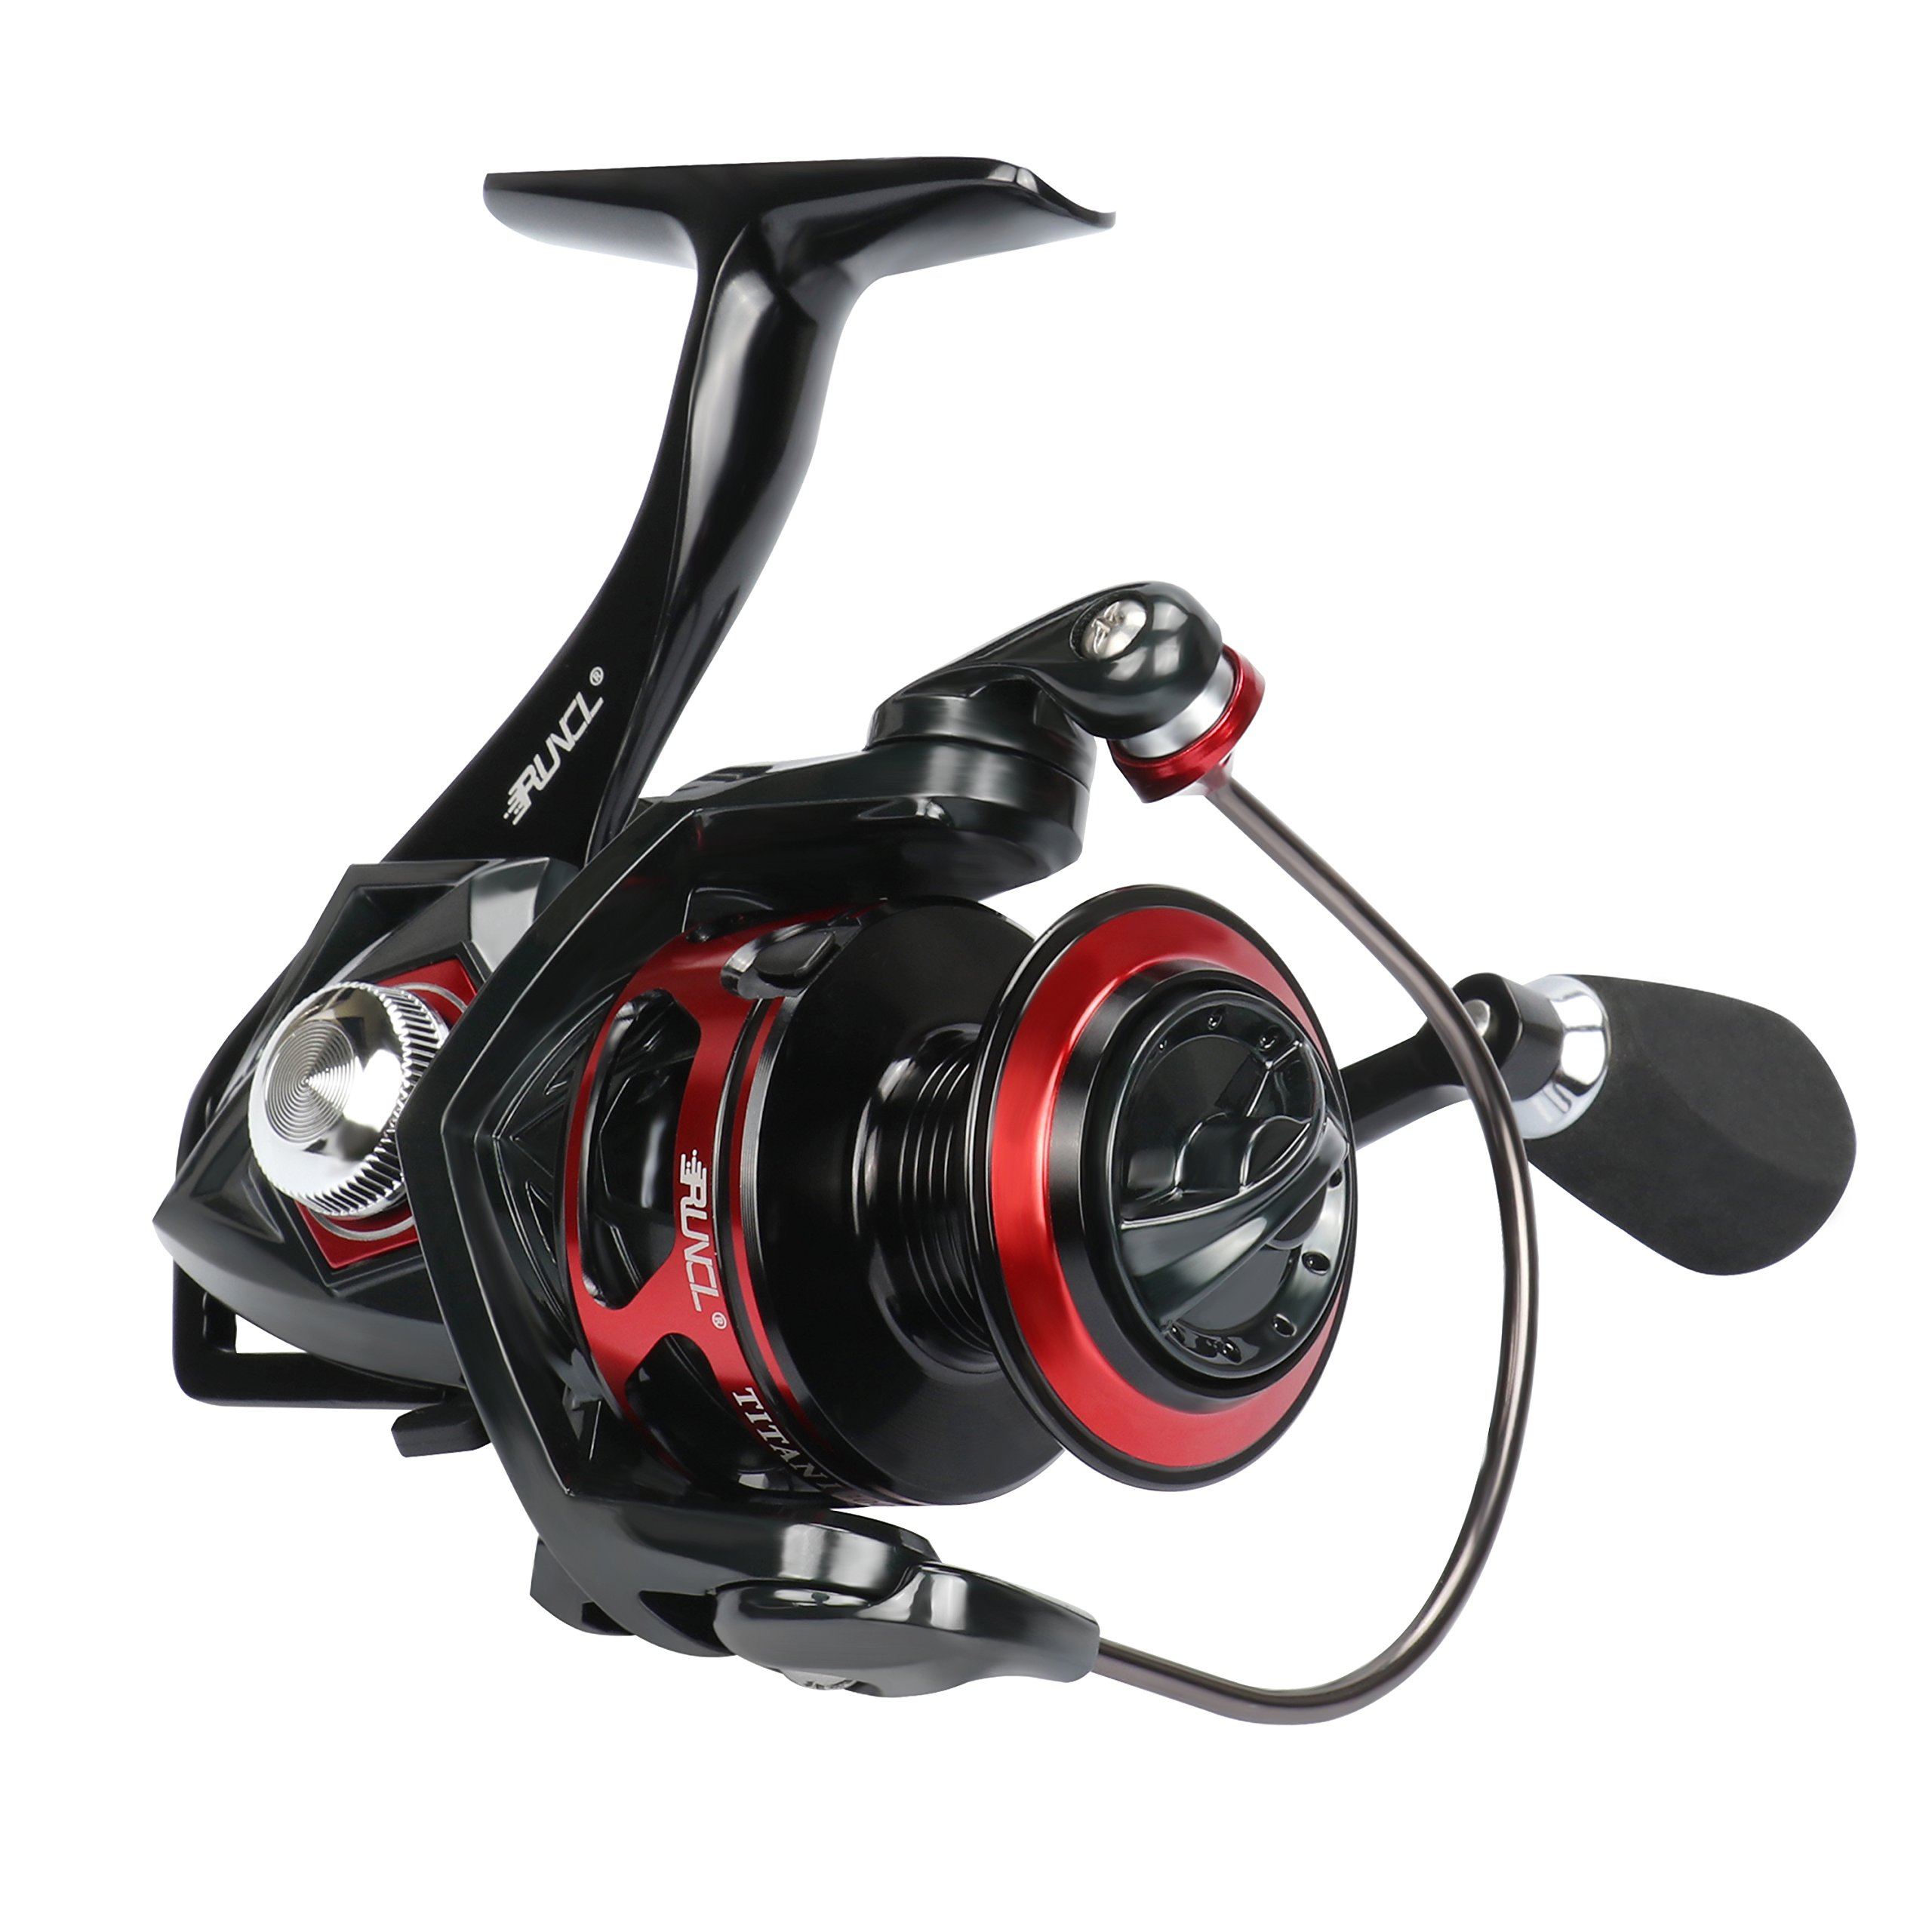 RUNCL Spinning Reel Titan I, Fishing Reel with Full Metal Body, Max Drag 33LB, 5 Carbon Fiber Drag Washers, 9+1 Stainless Steel Shielded Bearings, Hollow Out Rotor for Saltwater and Freshwater (3000) by RUNCL (Image #1)